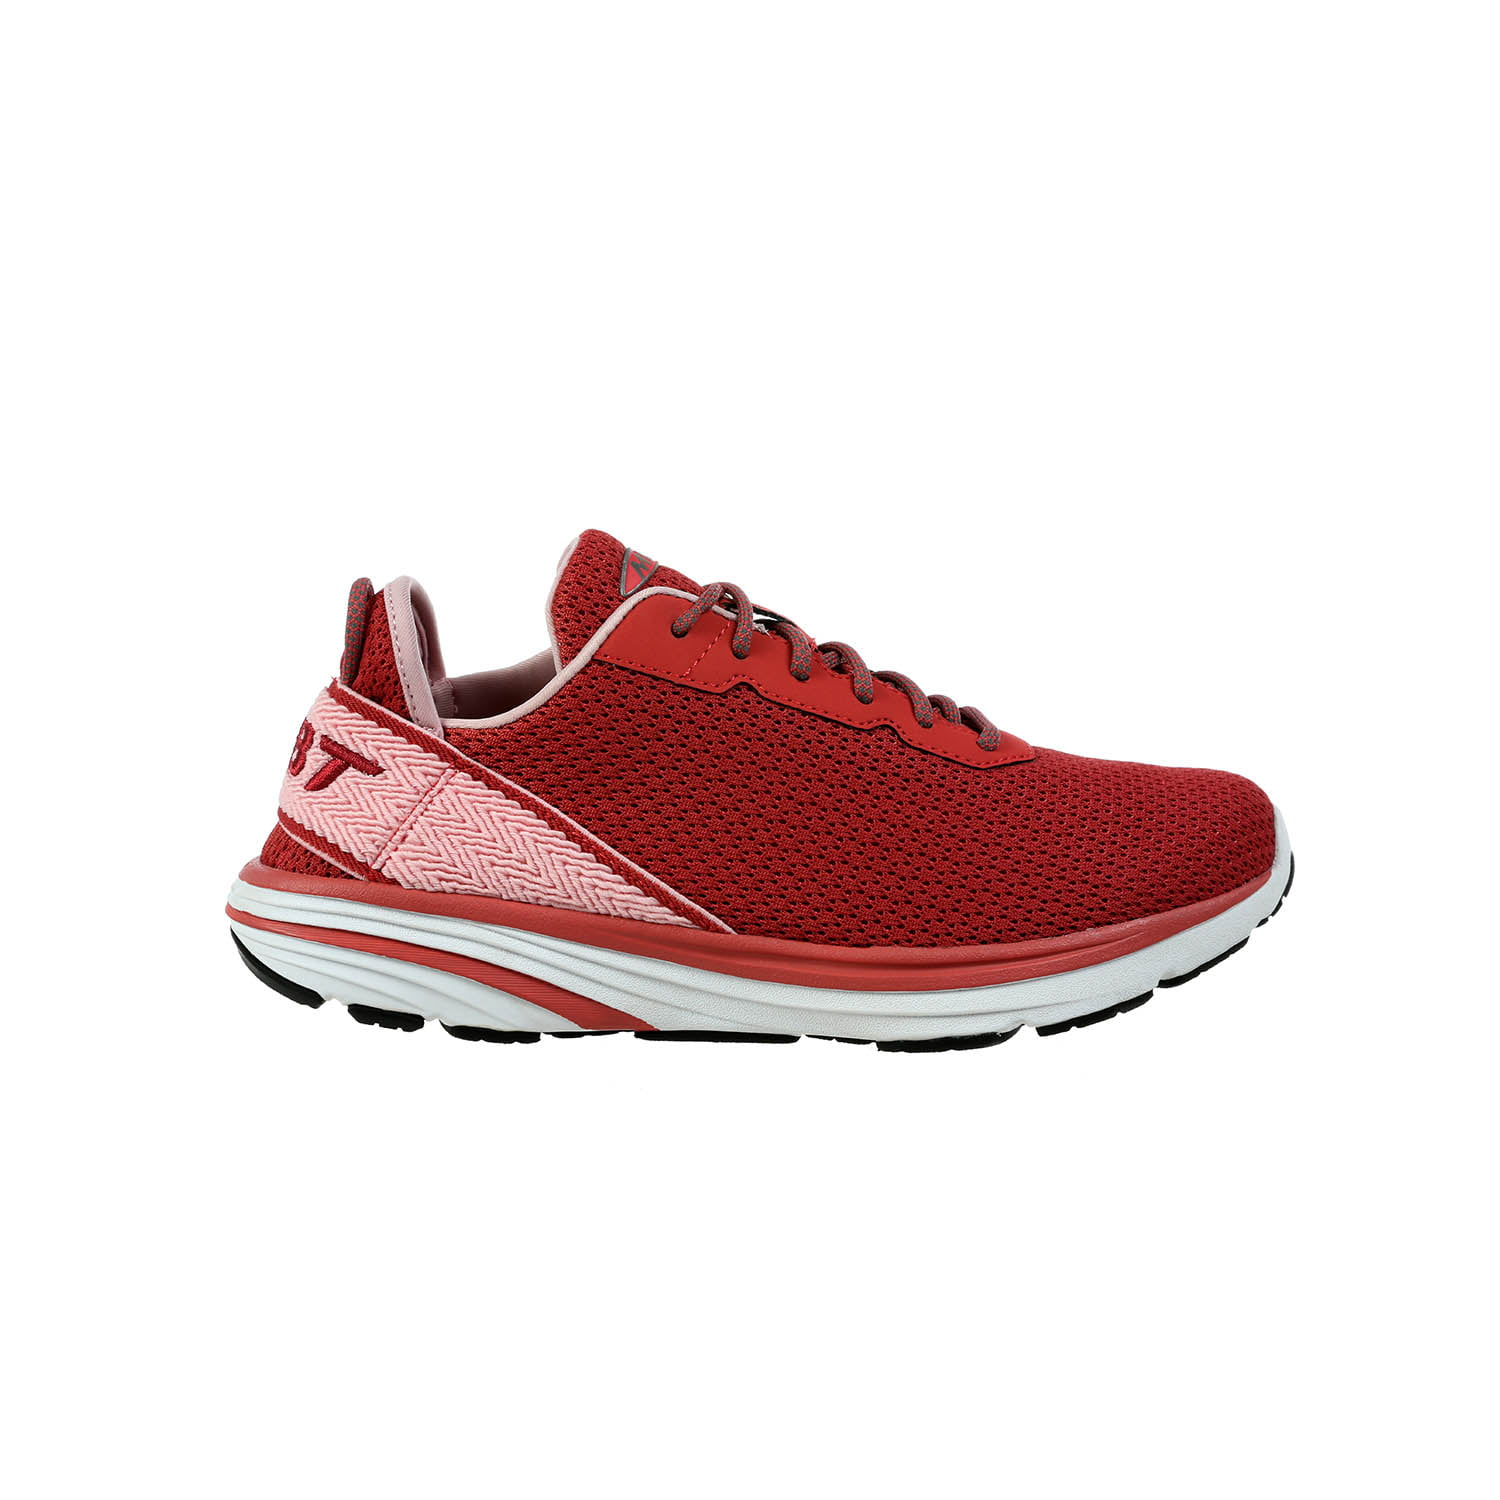 MINDERAL RED 1370M